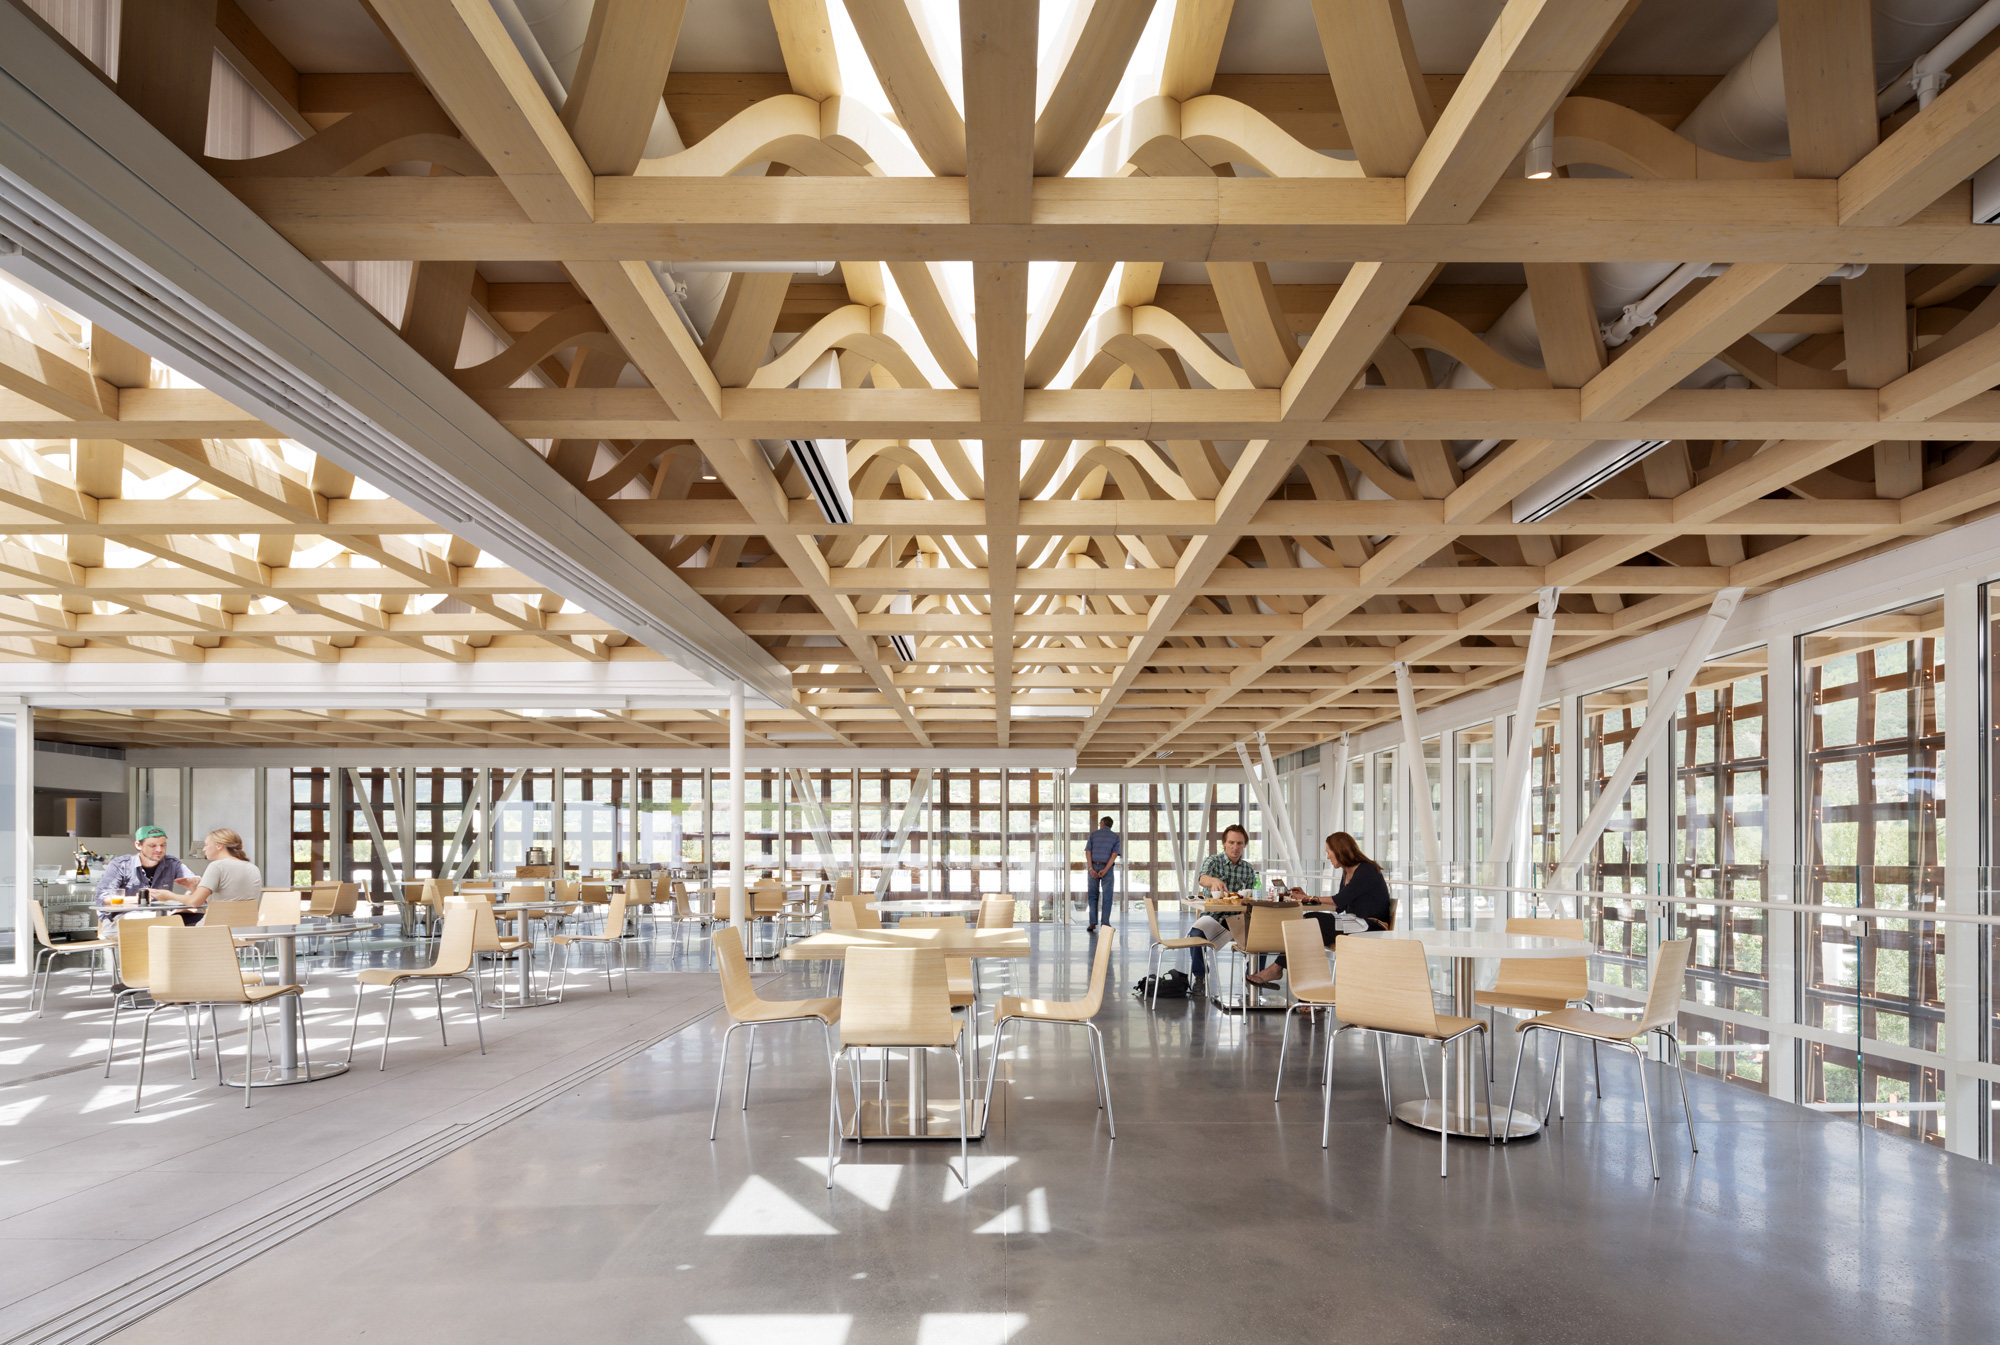 Aspen Art Museum / Shigeru Ban Architects (12)